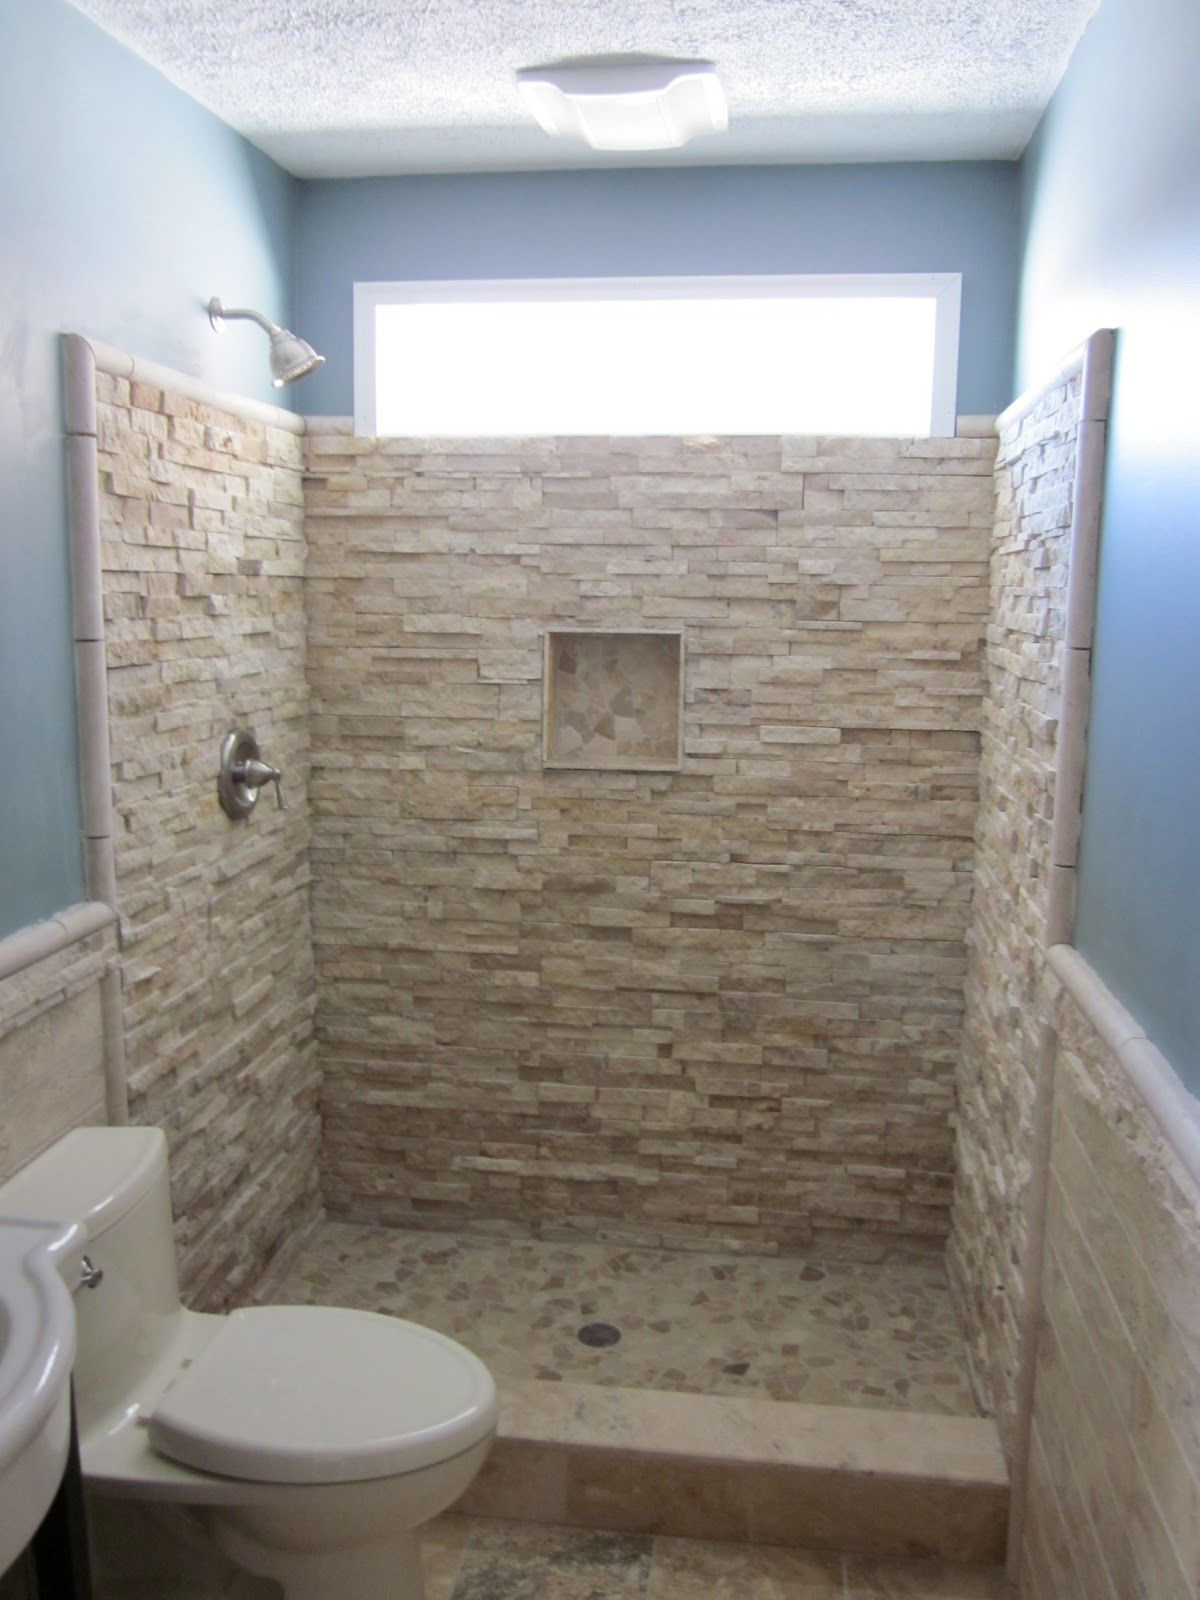 Ceramic Tile Bathroom Shower Small Space Big Shower Create The Kitchen Or Bath Of Your Dr Small Bathroom Tiles Small Bathroom Remodel Bathroom Design Small